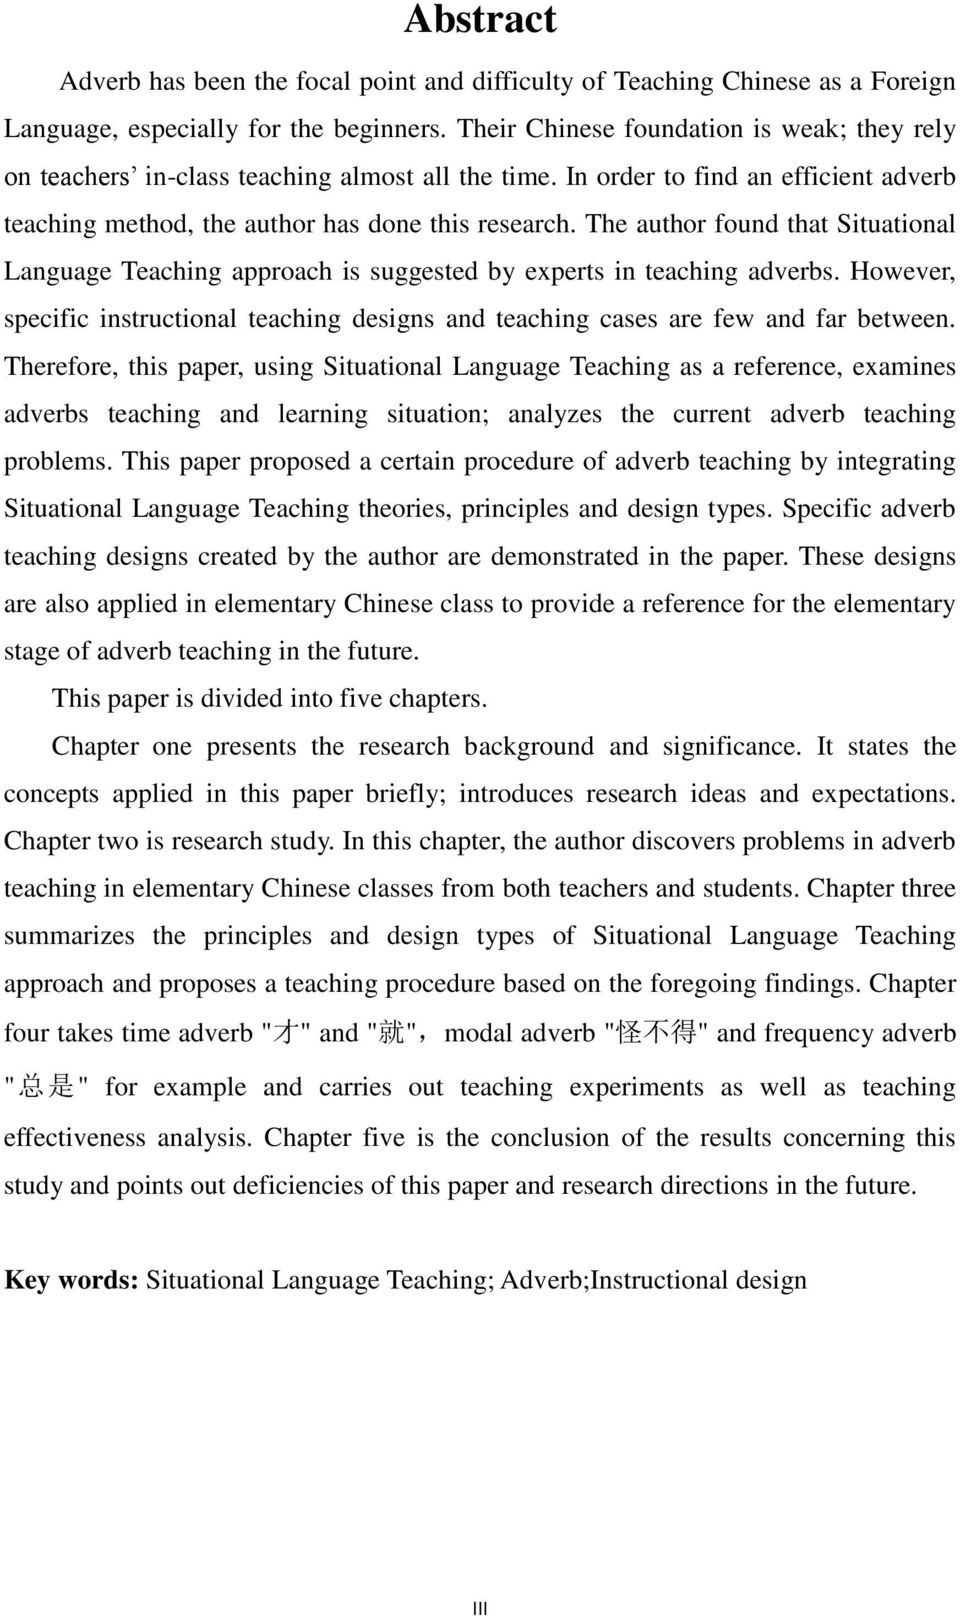 The author found that Situational Language Teaching approach is suggested by experts in teaching adverbs. However, specific instructional teaching designs and teaching cases are few and far between.